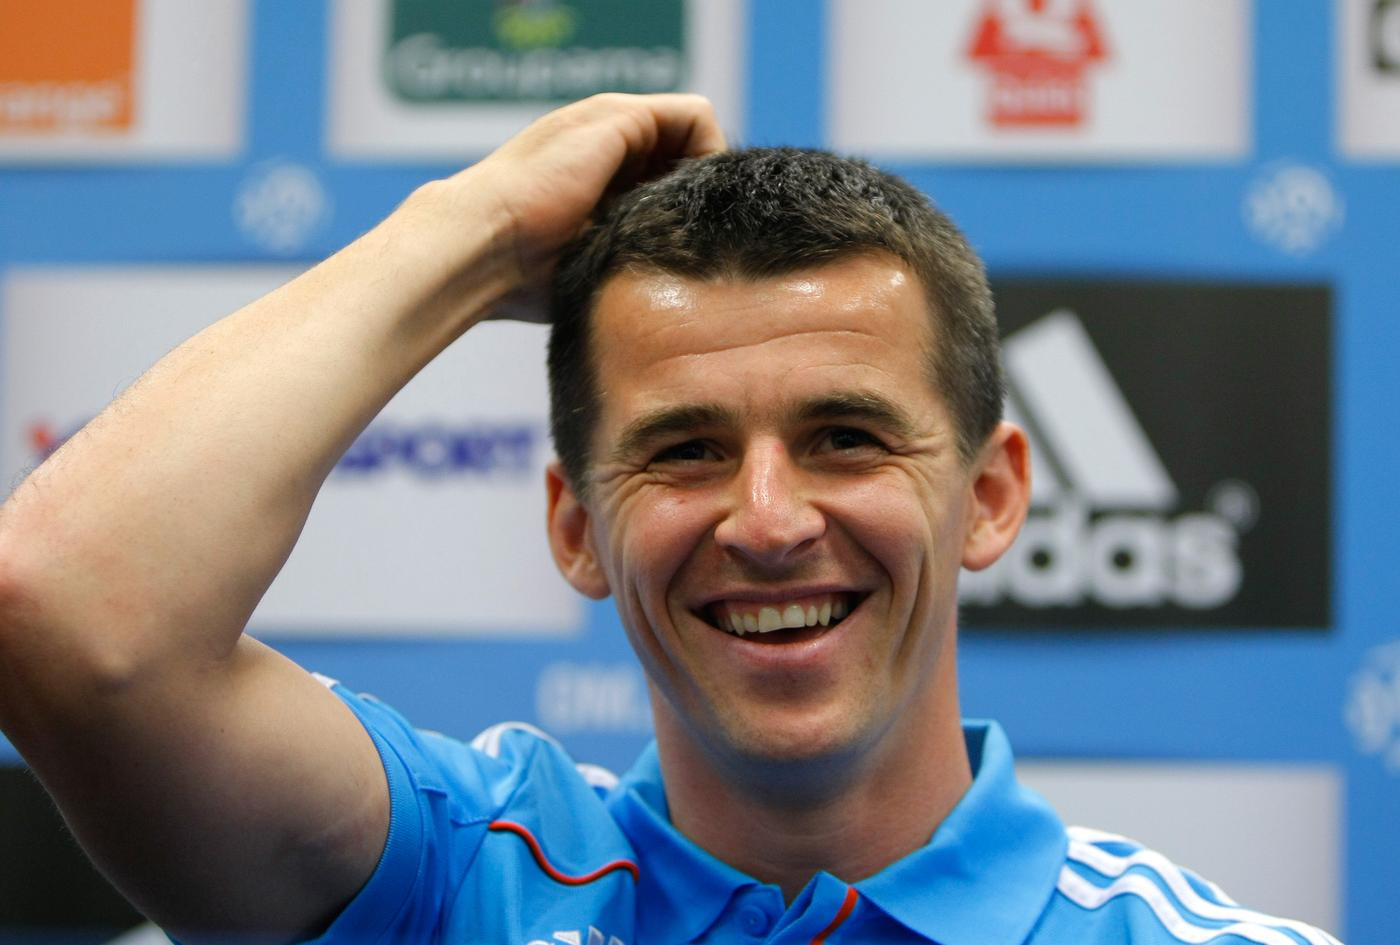 Joey Barton signs for Burnley and his old tweets instantly come back to haunt him